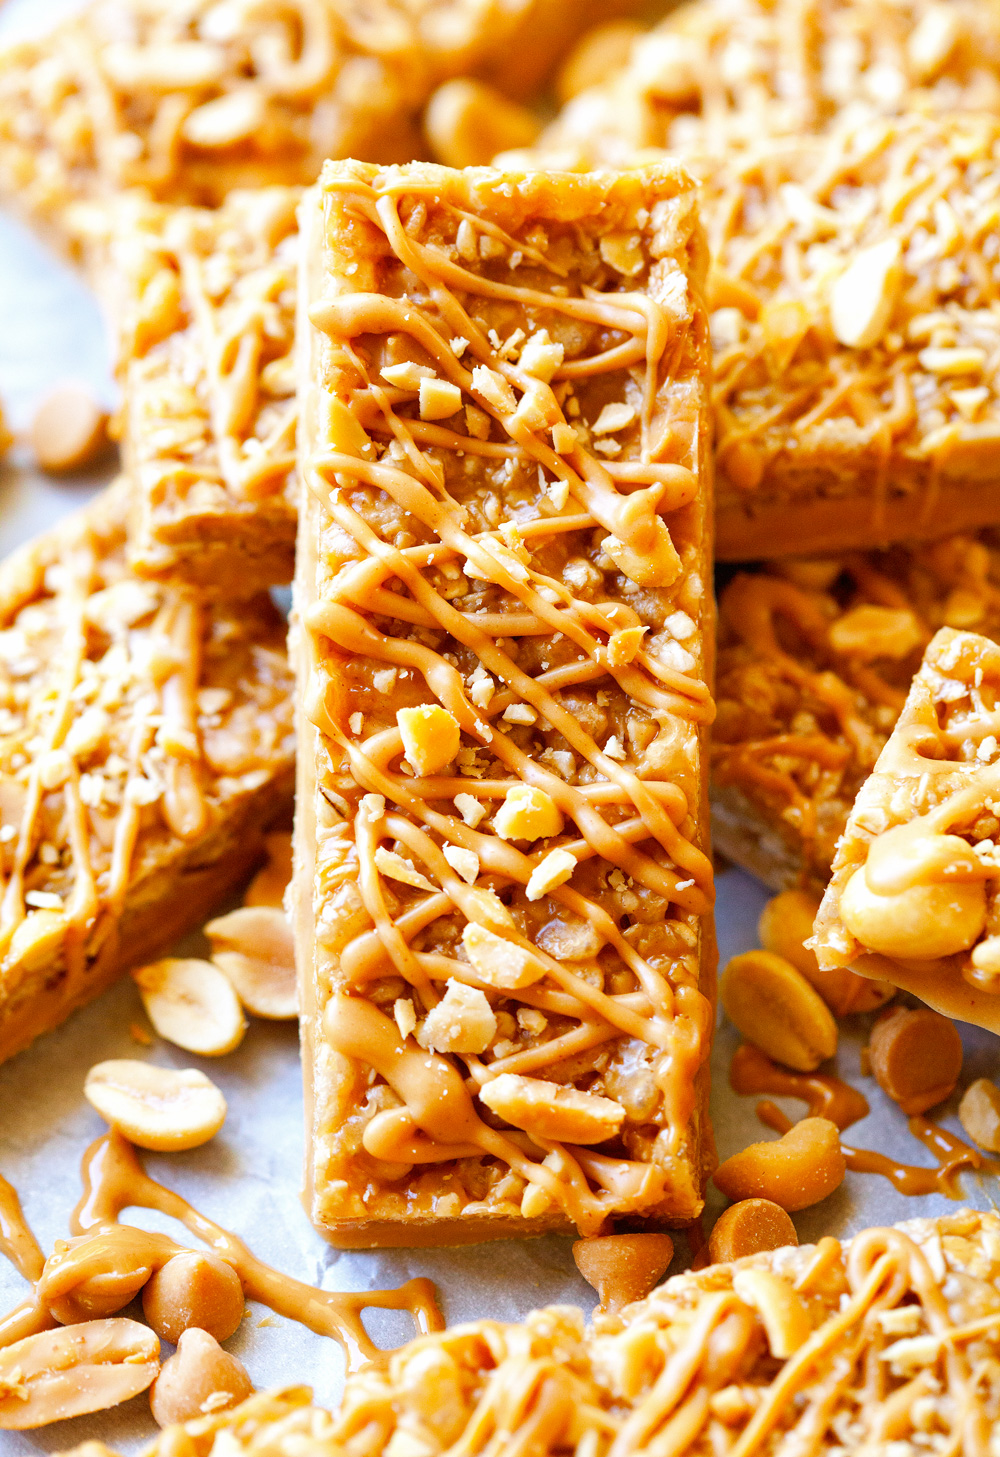 Dipped Peanut Granola Bars